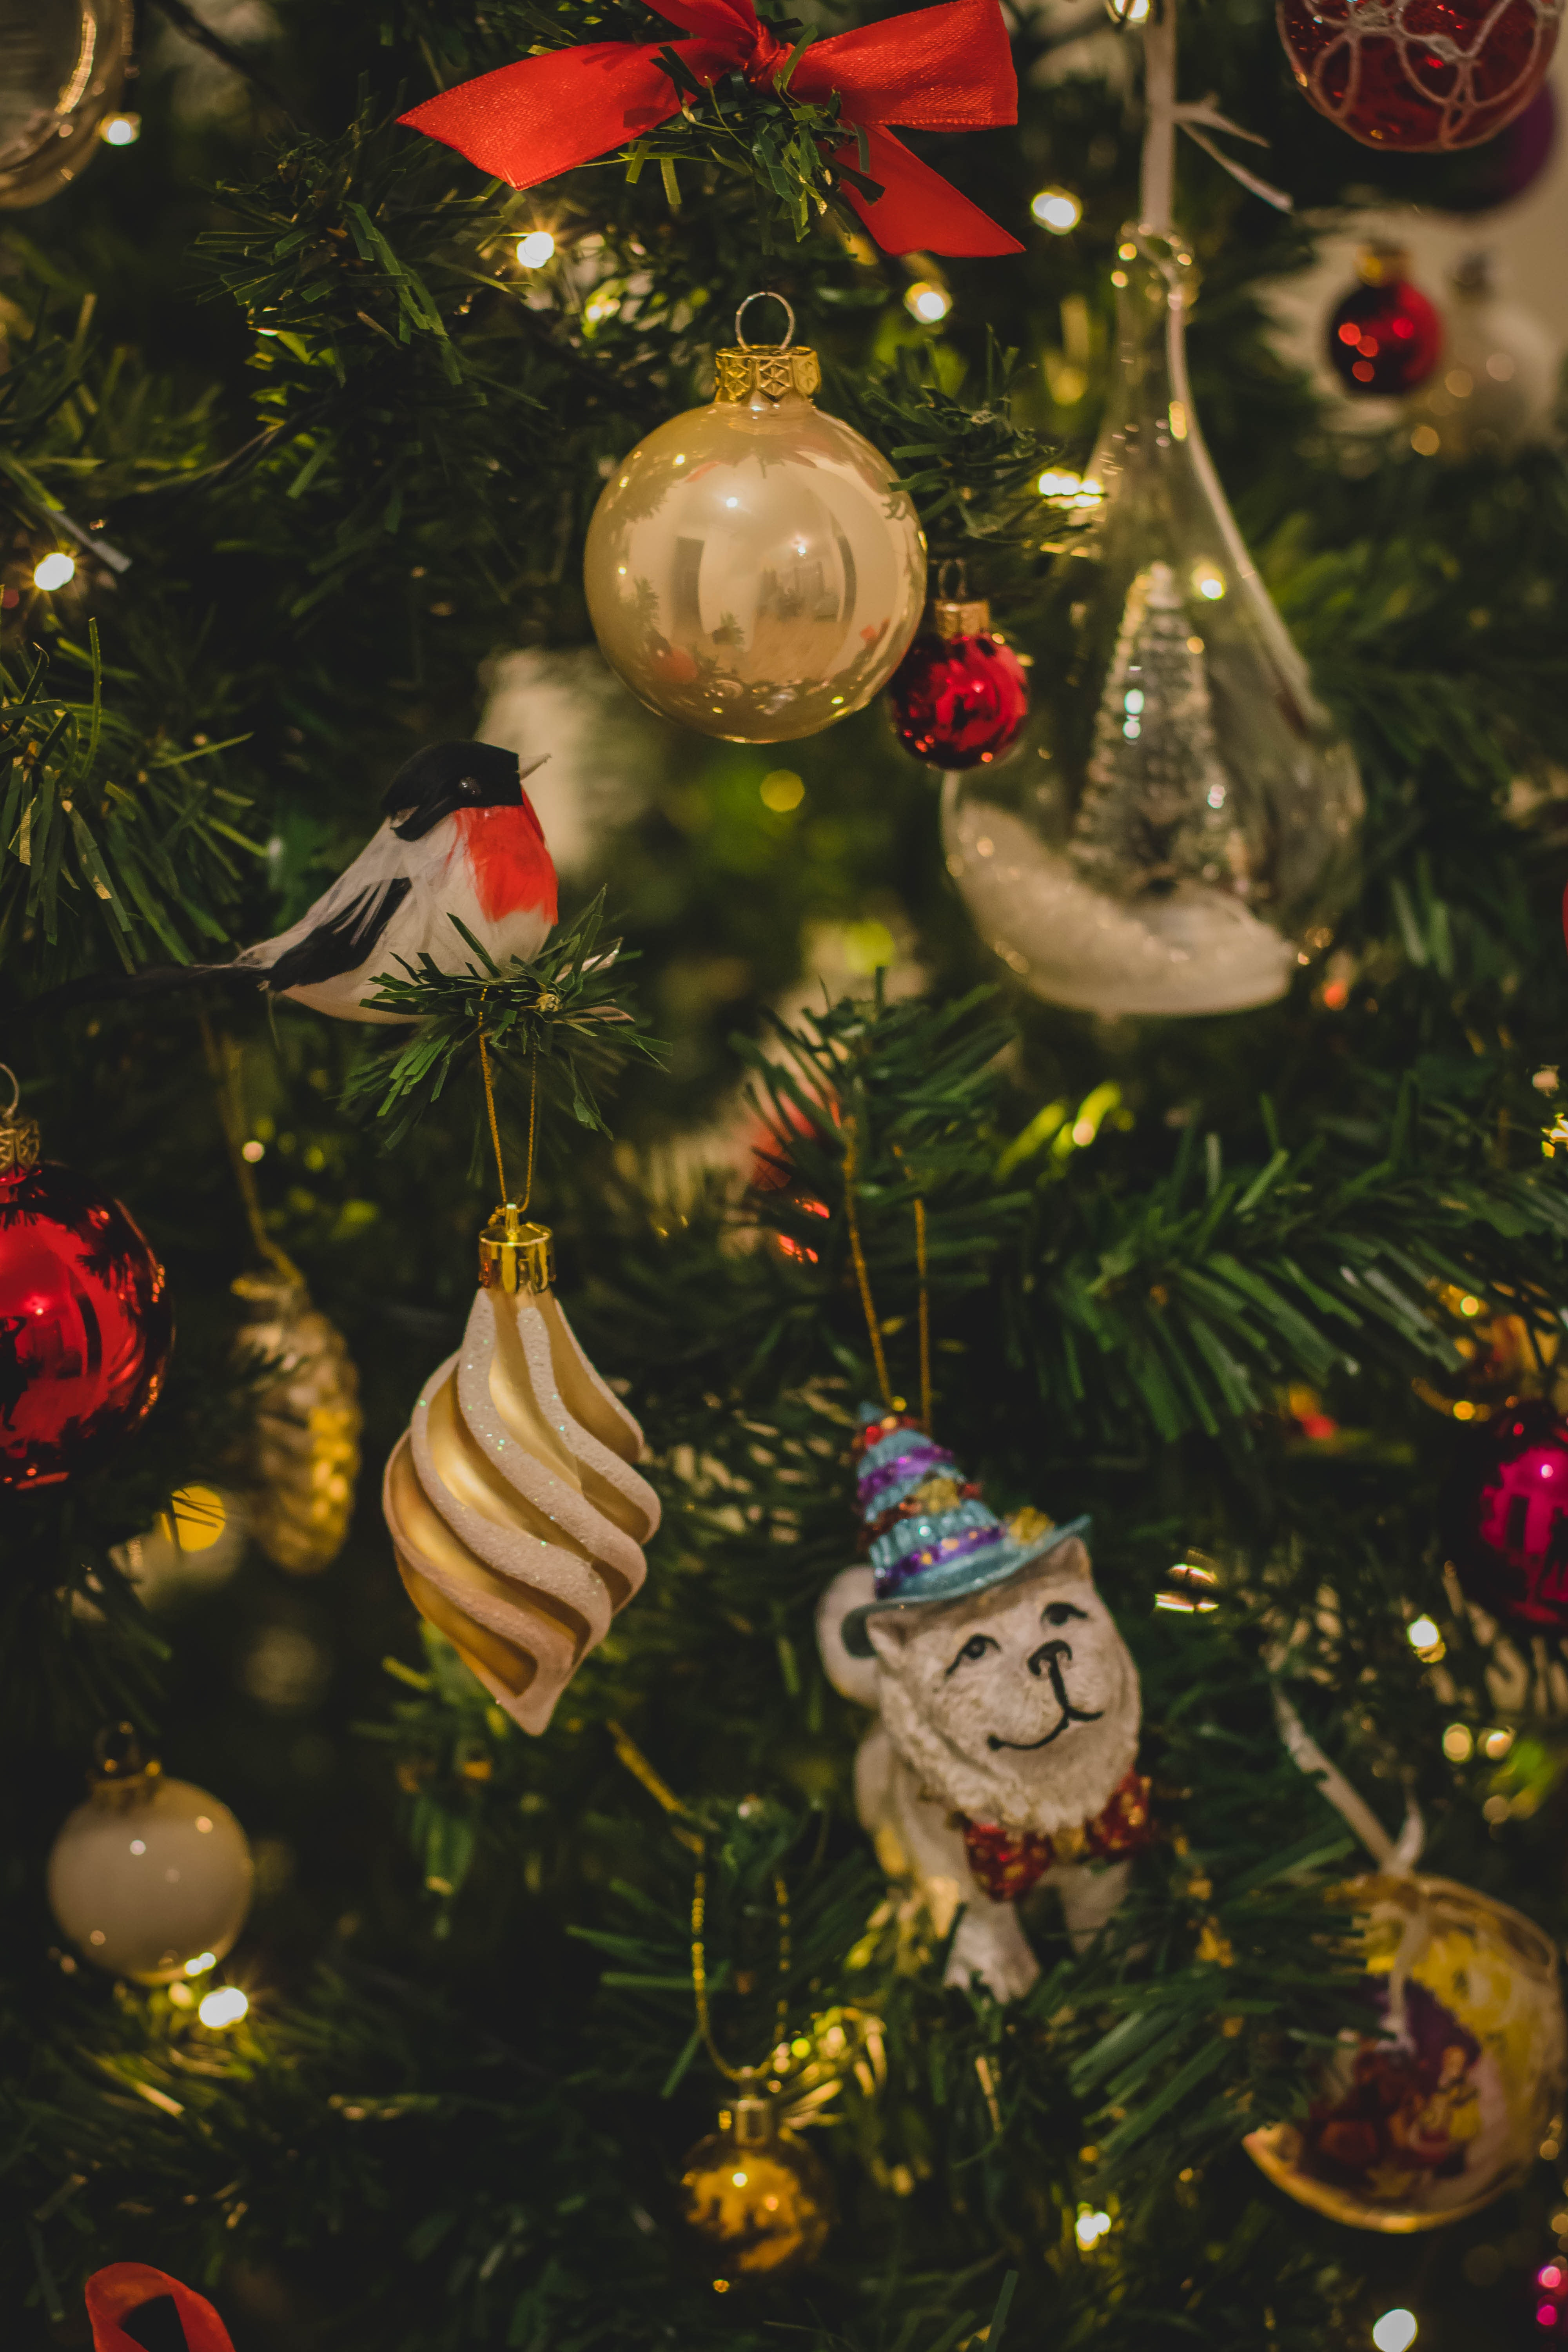 Assorted ornaments on christmas tree photo